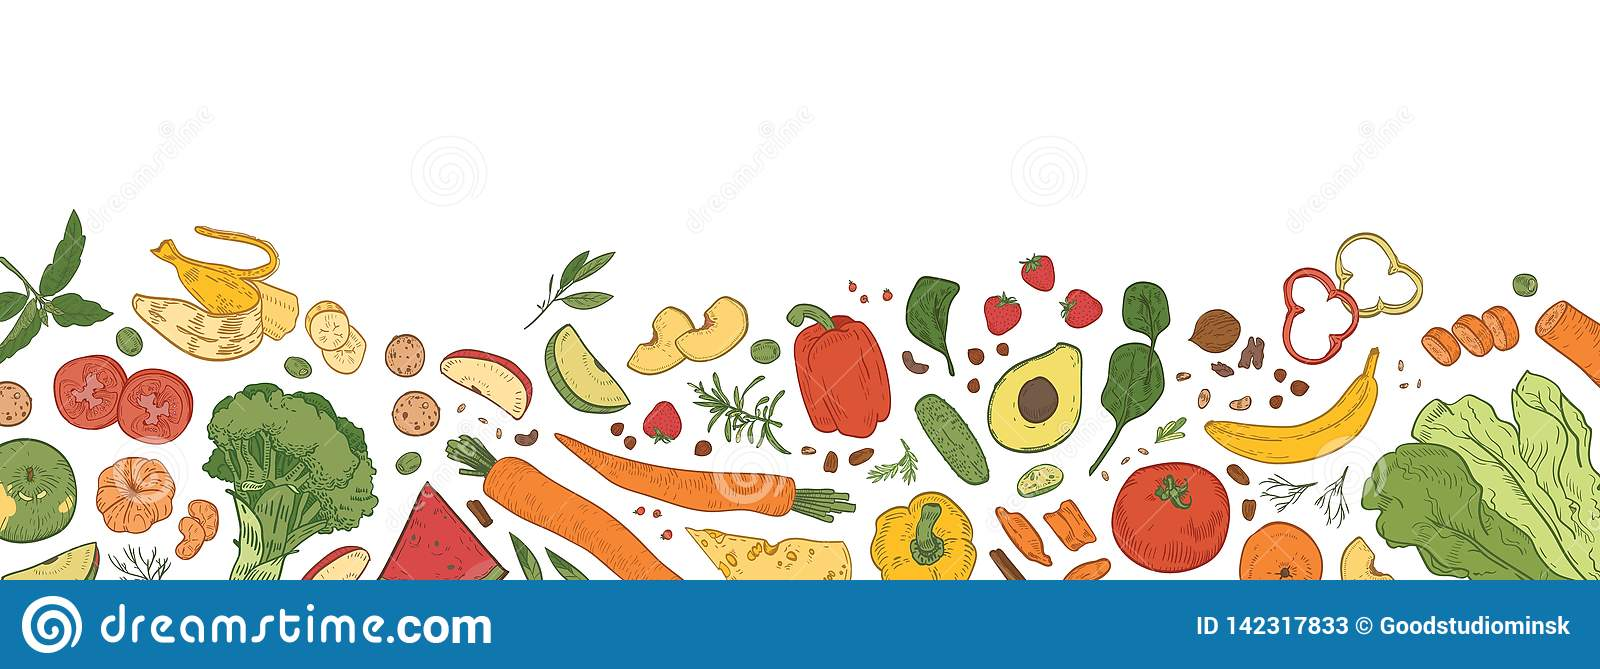 Horizontal backdrop with border consisted of fresh organic food. Banner template with tasty eco wholesome ripe